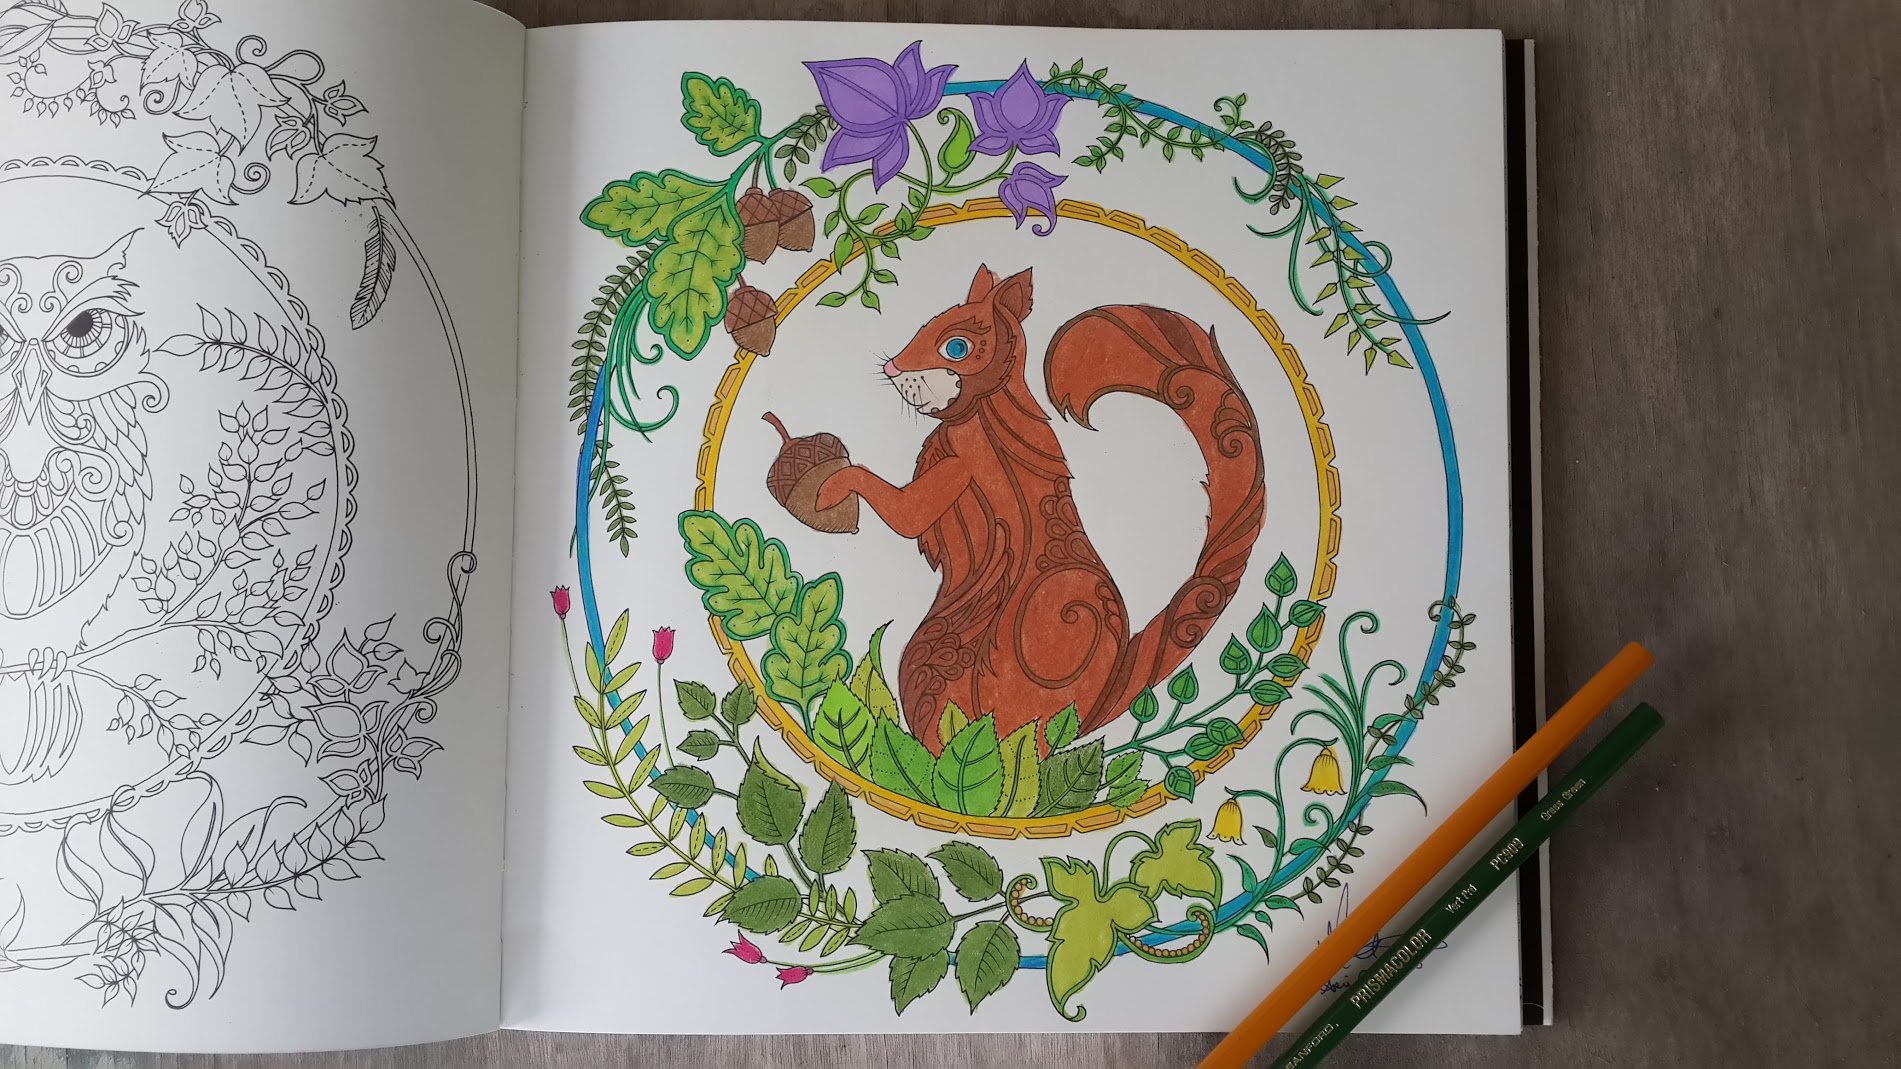 Enchanted Forest Coloring Book For Grown Ups Given Eyes To See